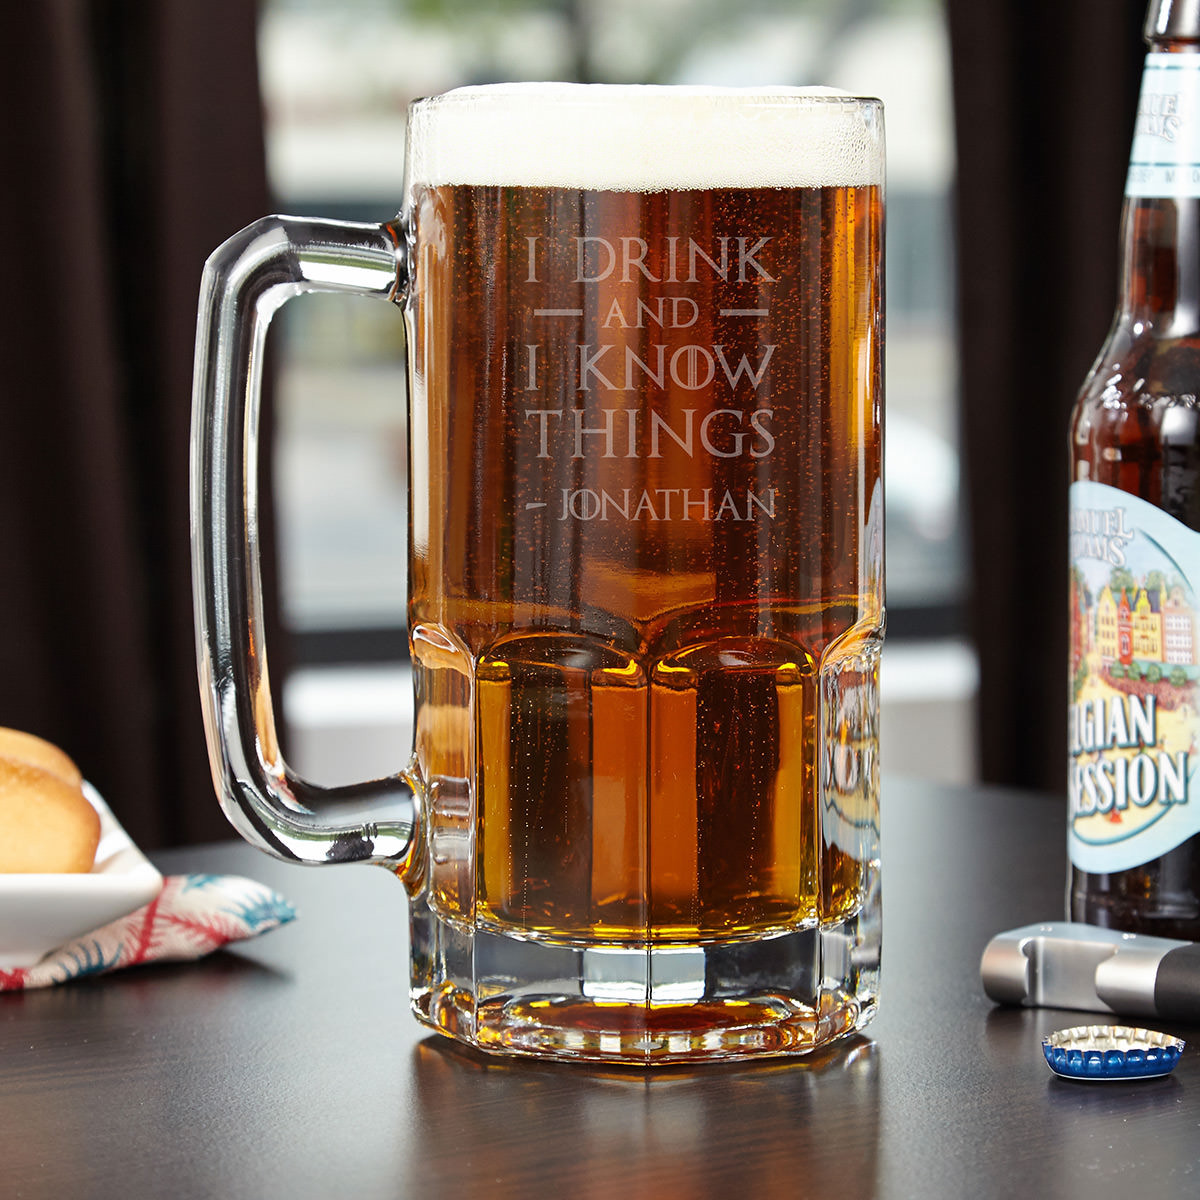 If you're confident in two things in this world it should be your knowledge and beer drinking. If that's the case then the personalized I Drink and I Know Things mug is the piece to bring it all together. Capable of holding an impressive 33 ounces, th #mug